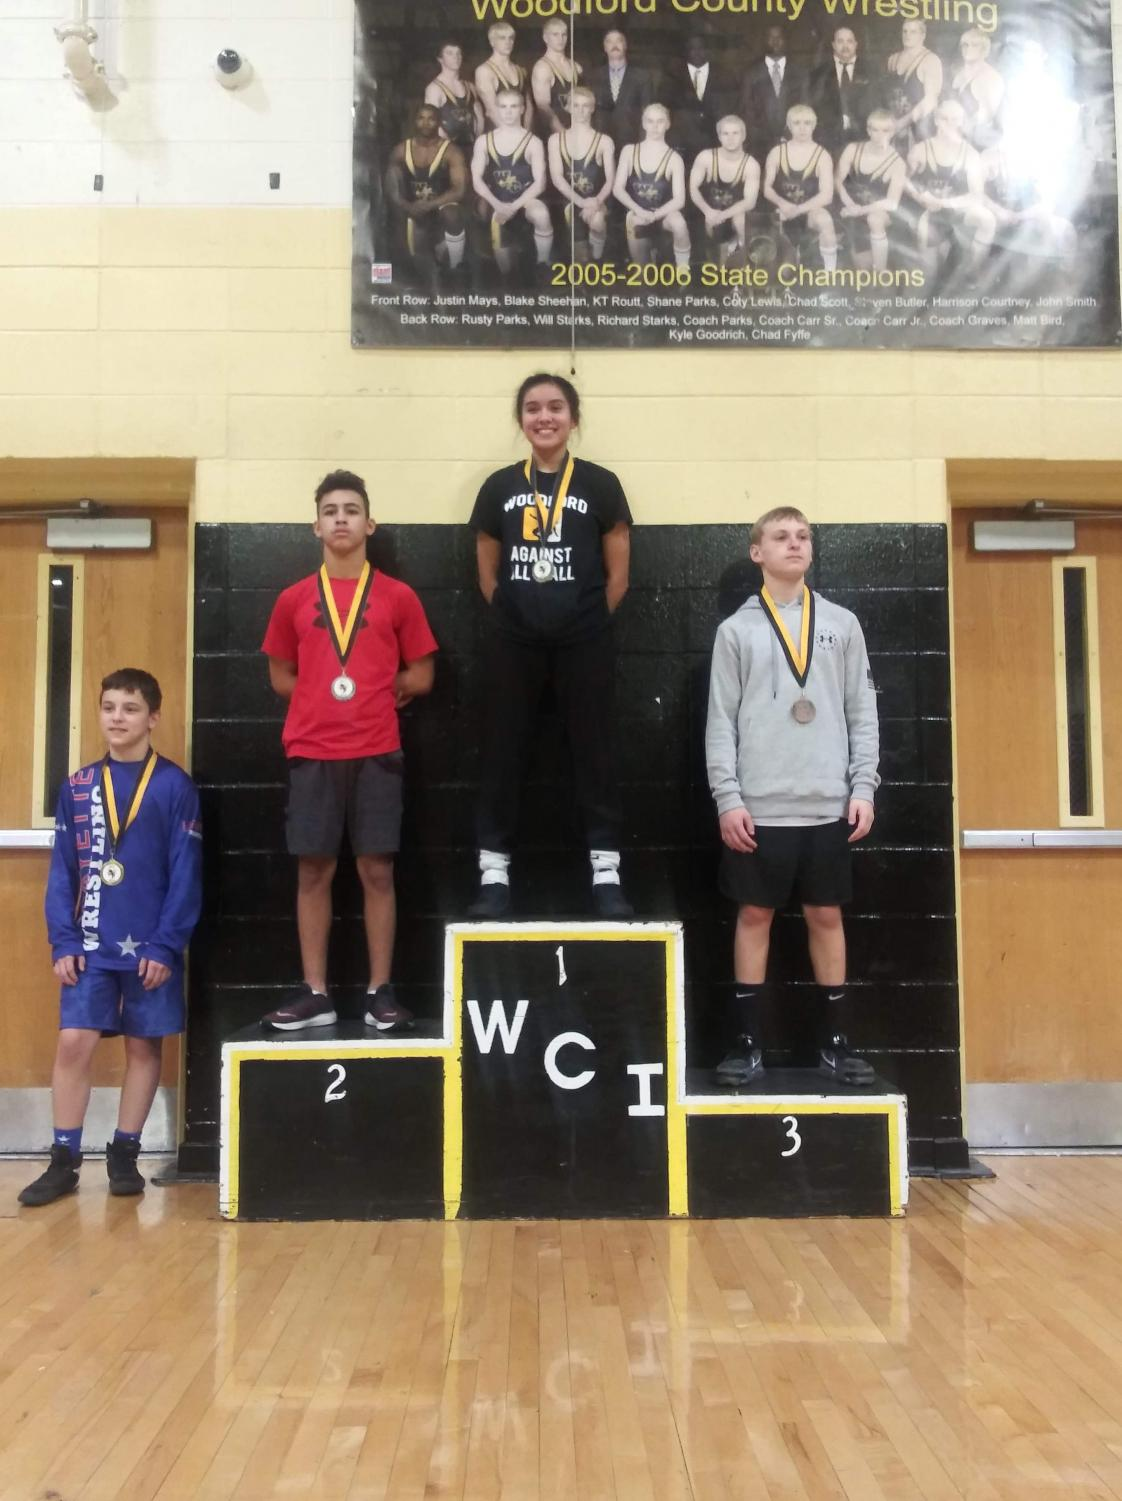 Ashley Courtney places first and is the first woman in history to win WCI.